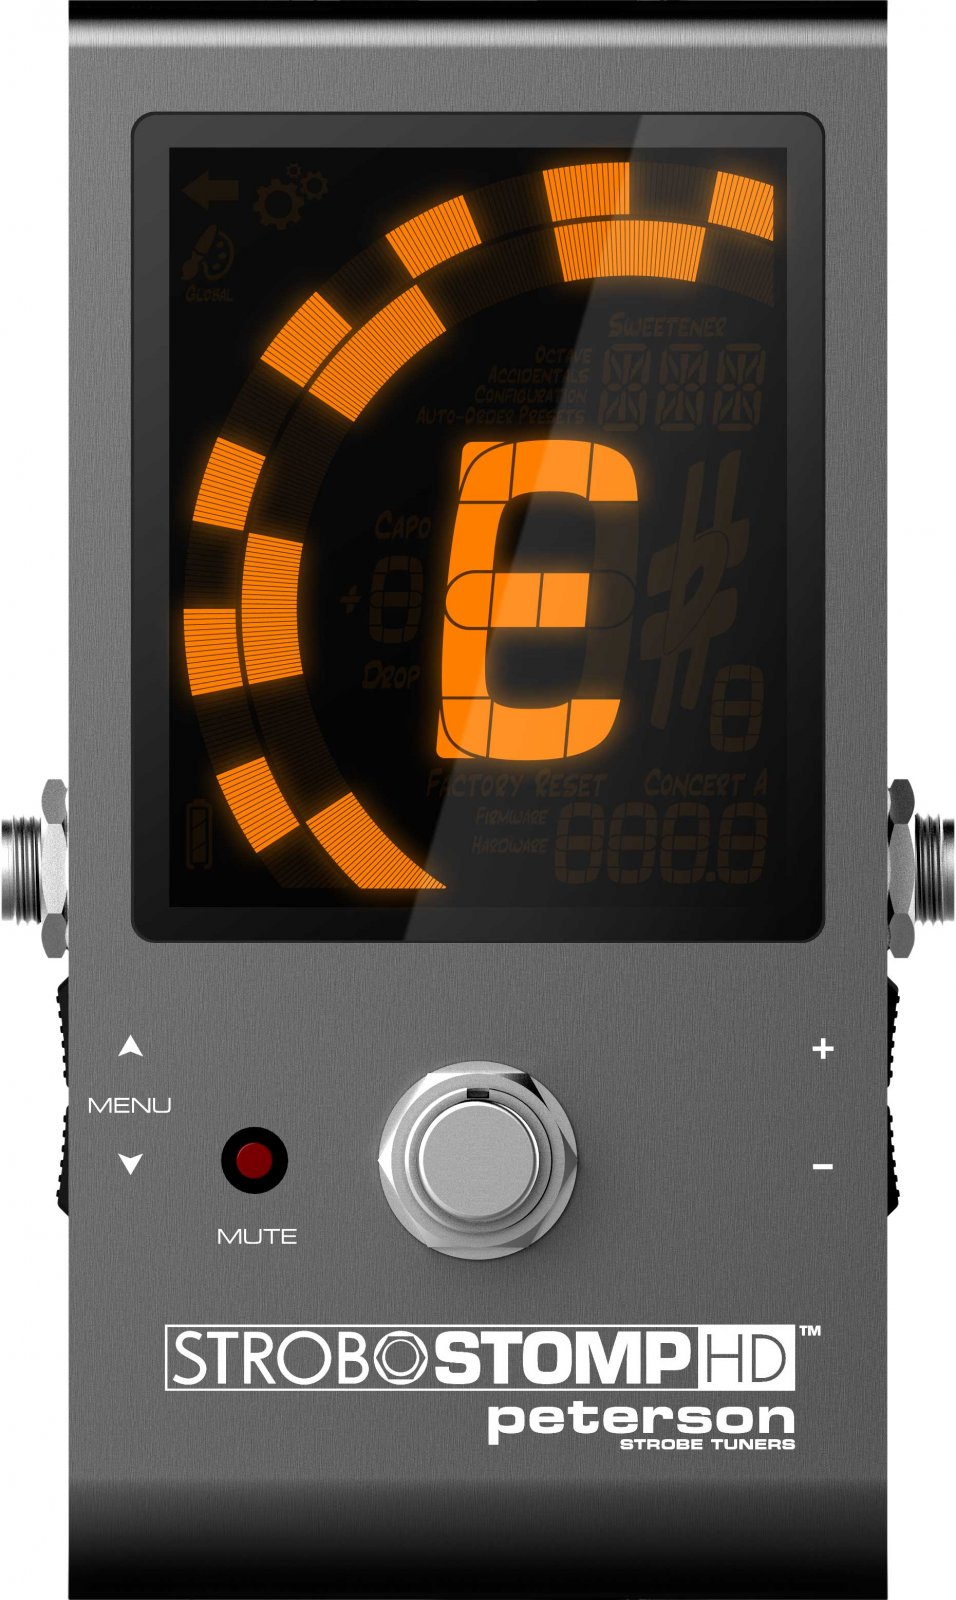 Peterson SS-HD Strobostomp HD Pedal Tuner